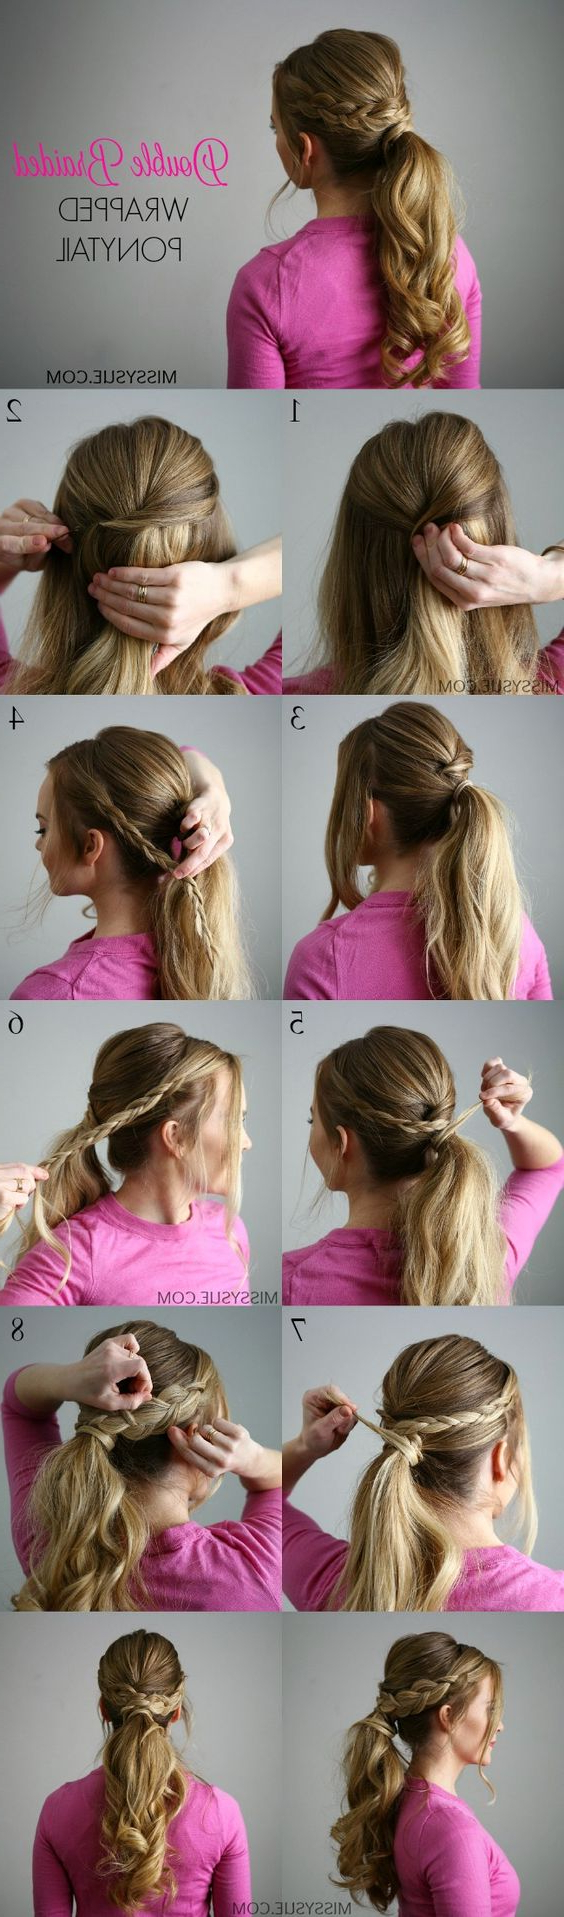 21 Tutorials For Styling Wrap Around Braids – Pretty Designs For Best And Newest Wrapped Ponytail Braid Hairstyles (View 8 of 20)